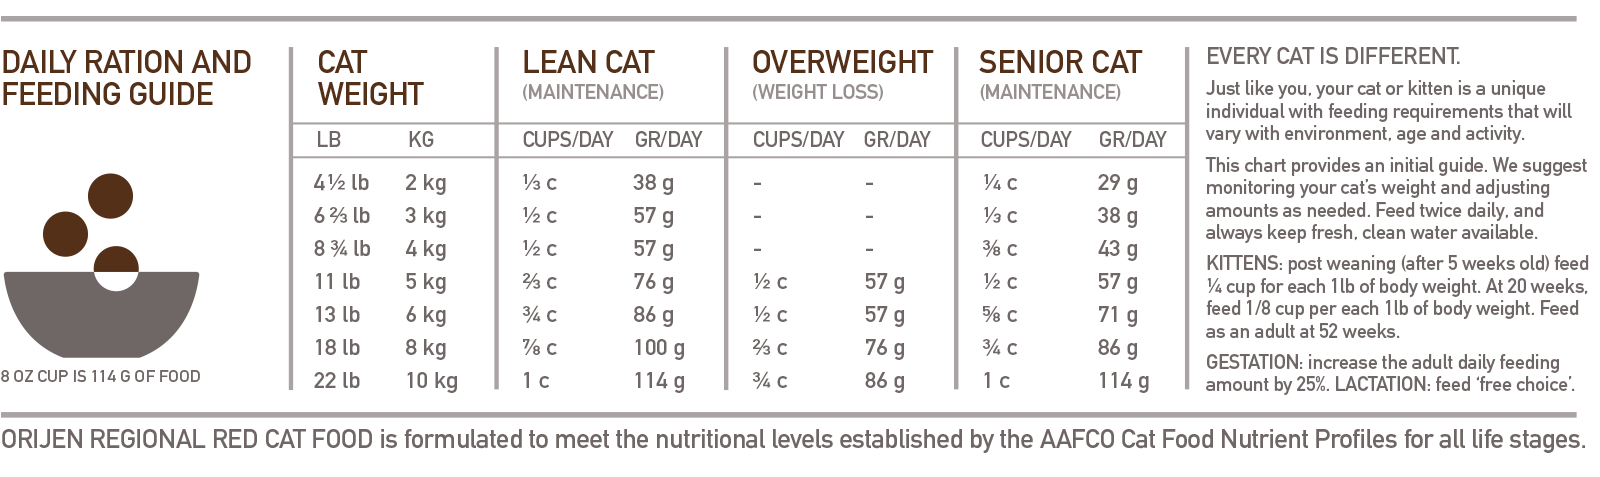 ORIJEN Regional Red Biologically Appropriate Cat Food Feeding Chart